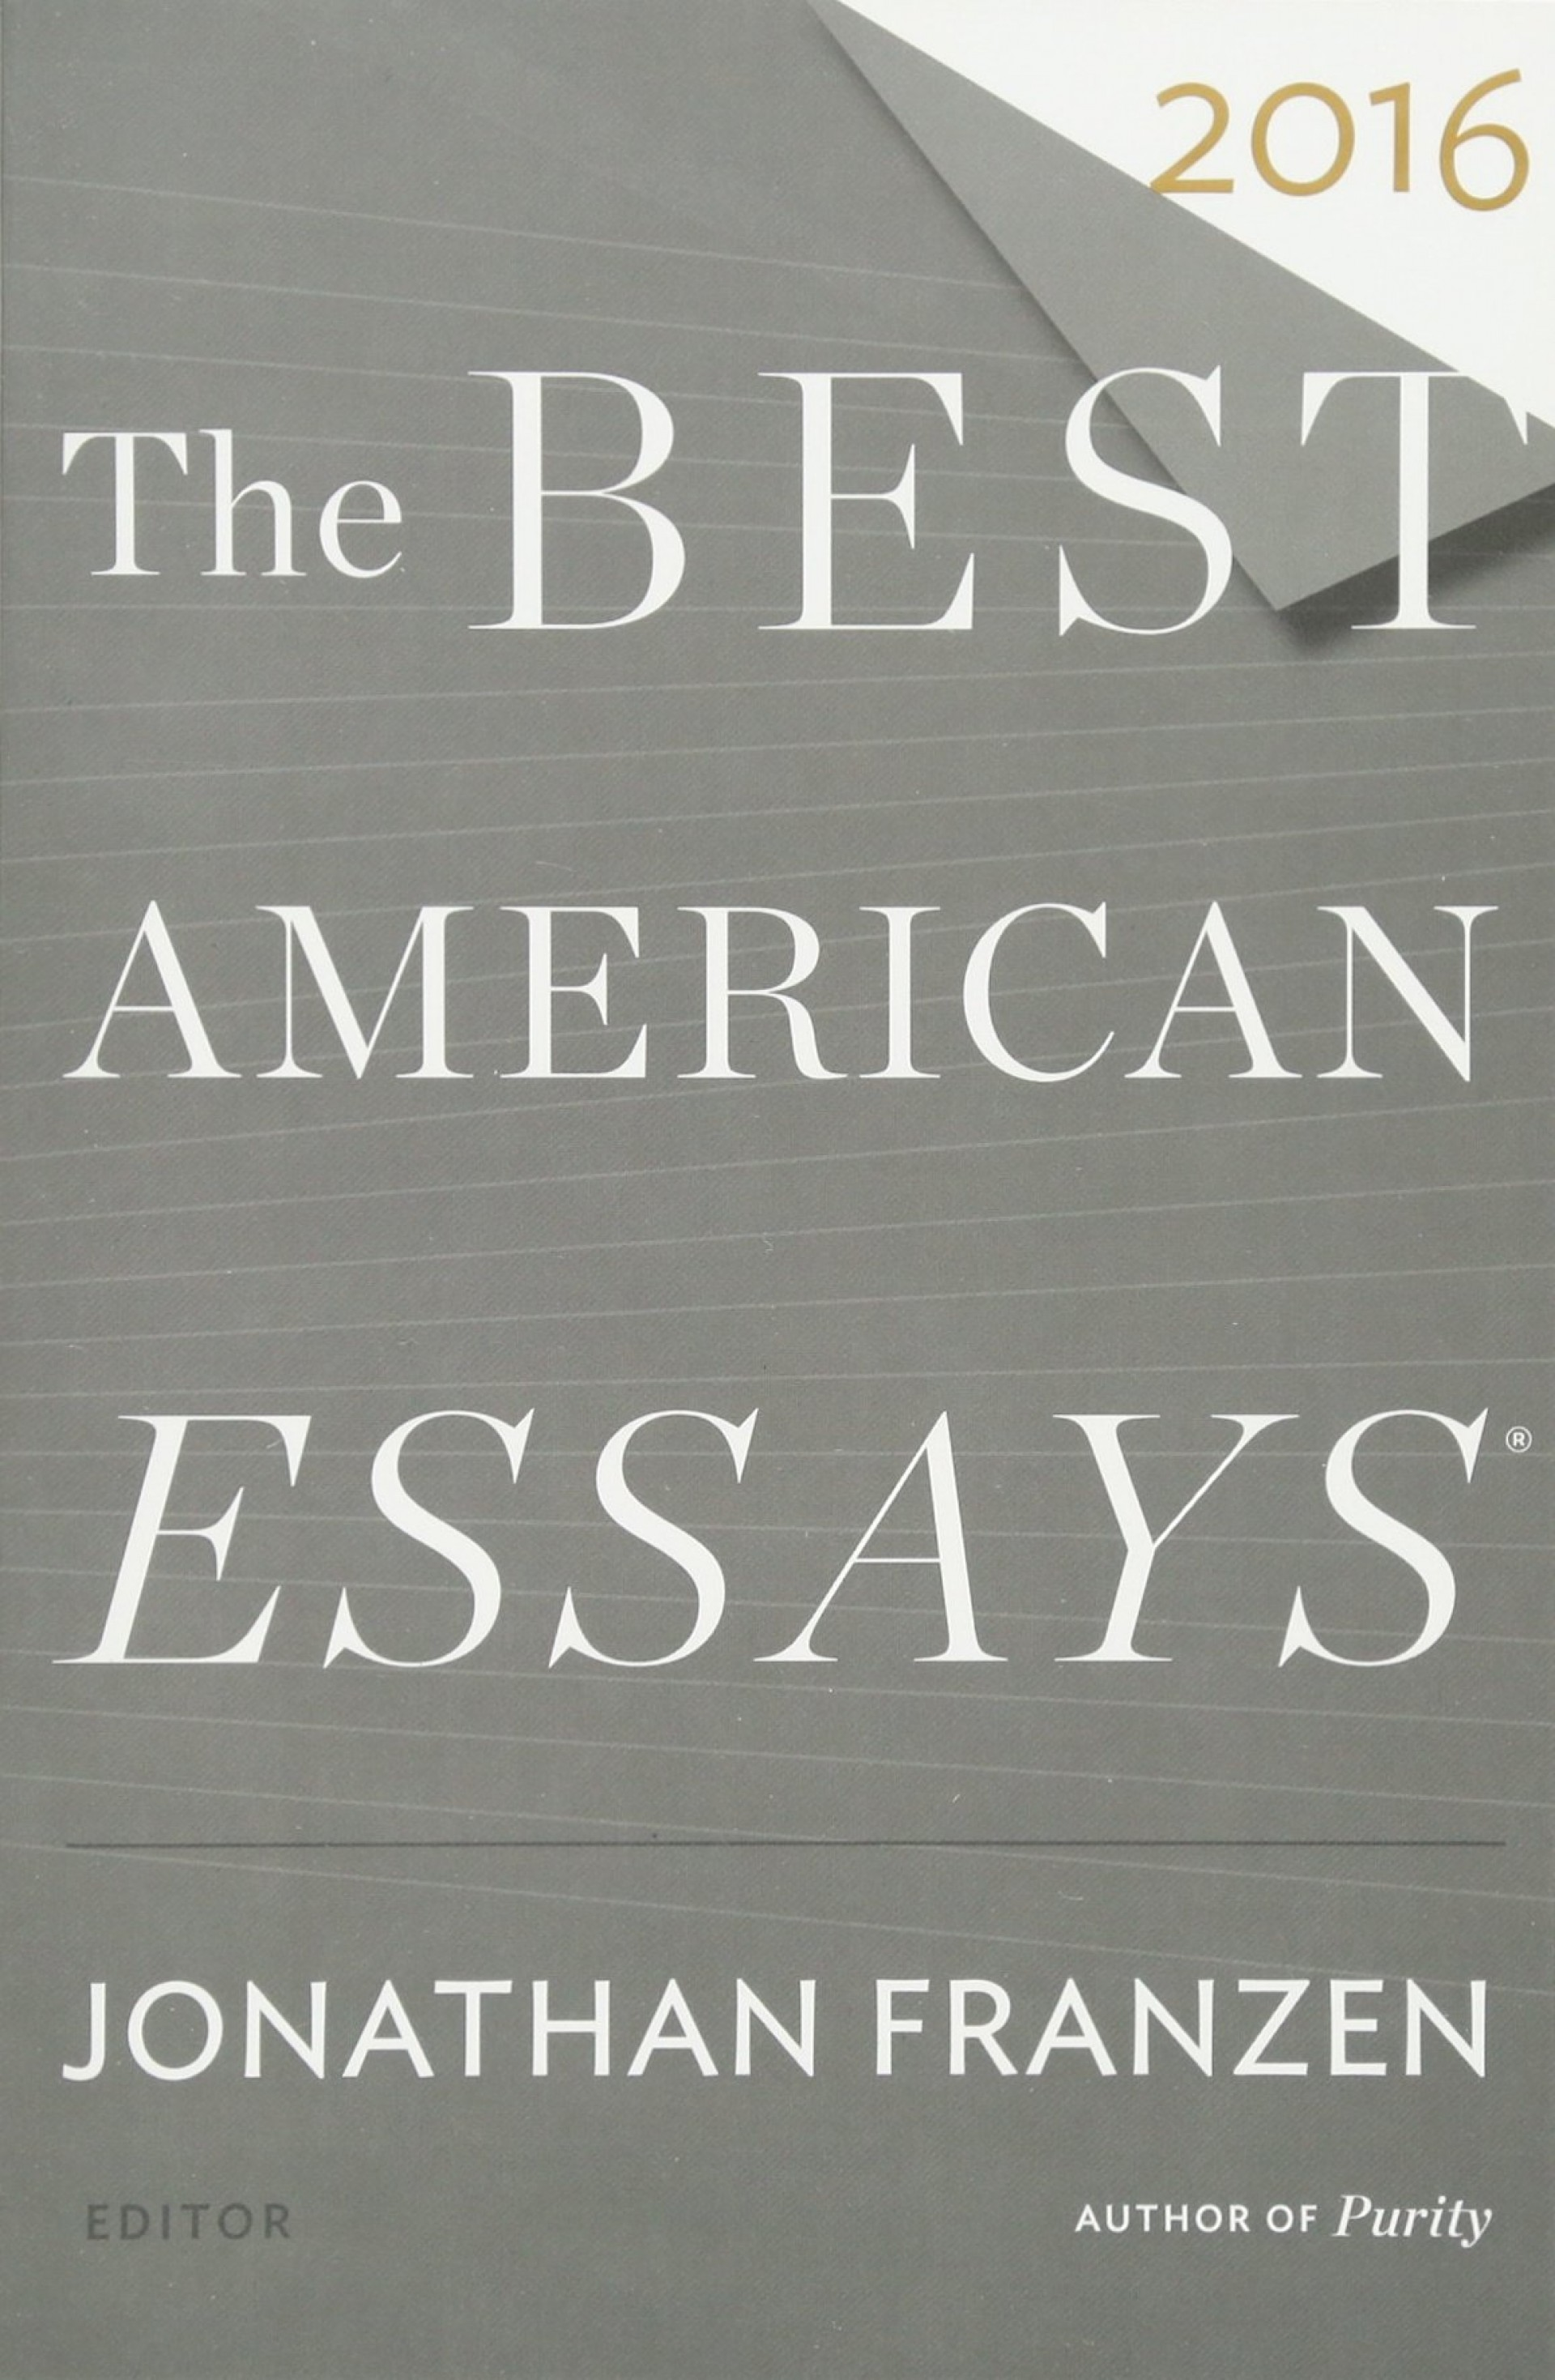 005 The Best American Essays Essay Example Wonderful 2013 Pdf Download Of Century Sparknotes 2017 1920